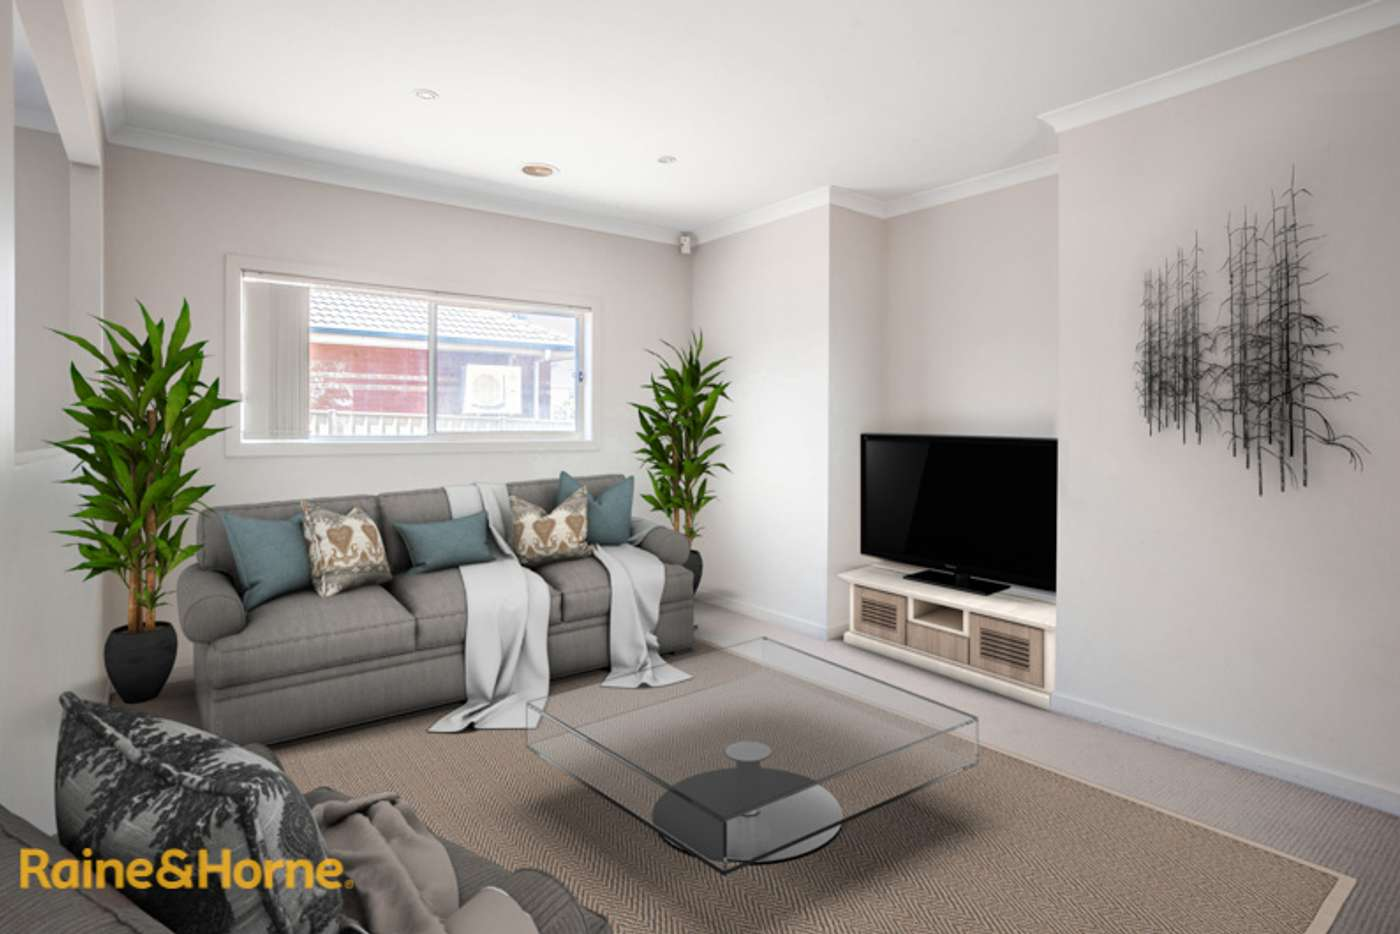 Sixth view of Homely house listing, 7 SANDPIPER GROVE, Sunbury VIC 3429